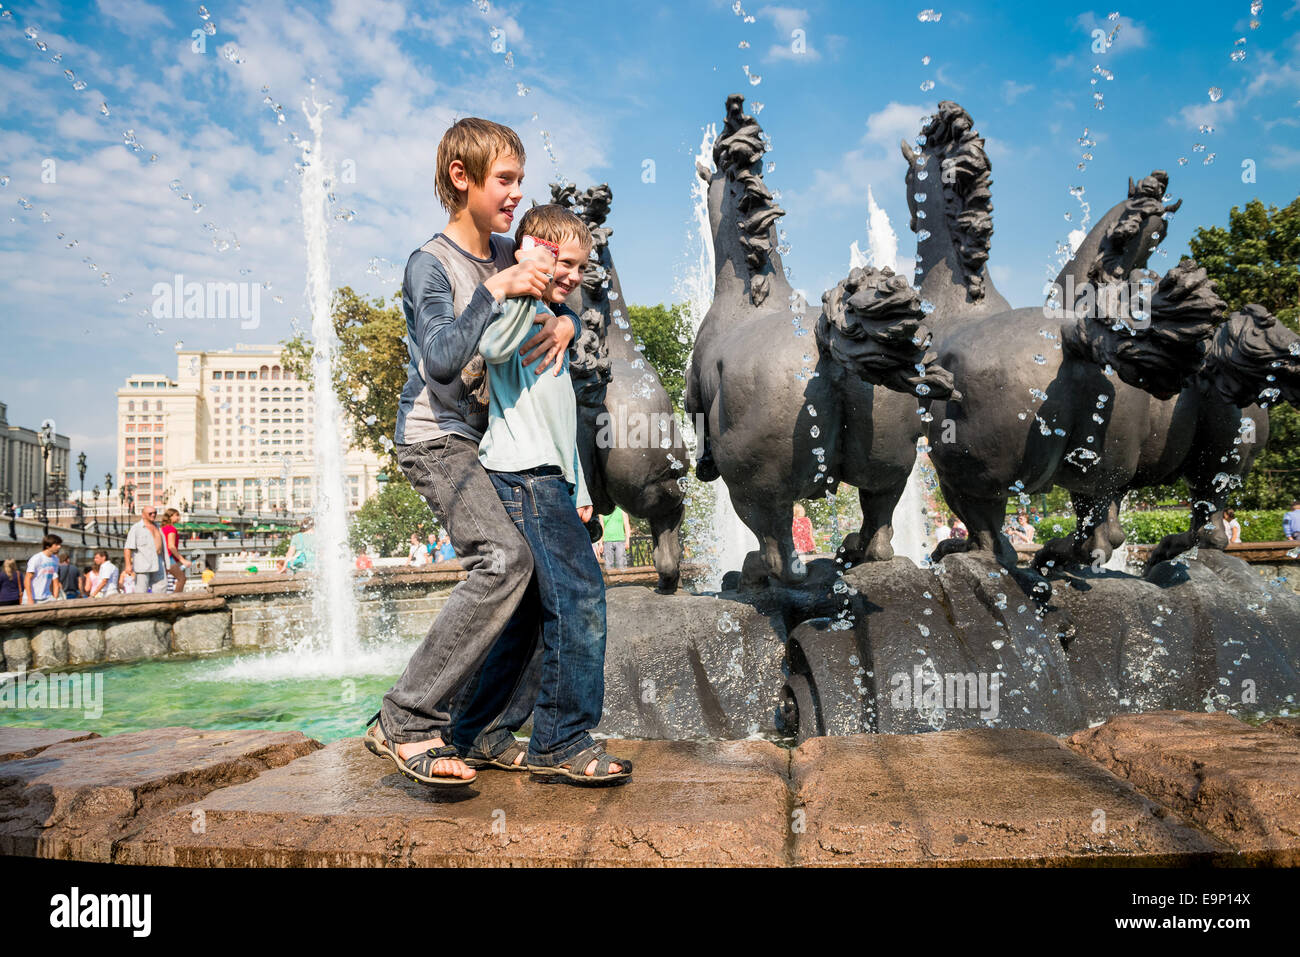 Alexander Garden in Moscow attract people in hot Russian summer - Stock Image